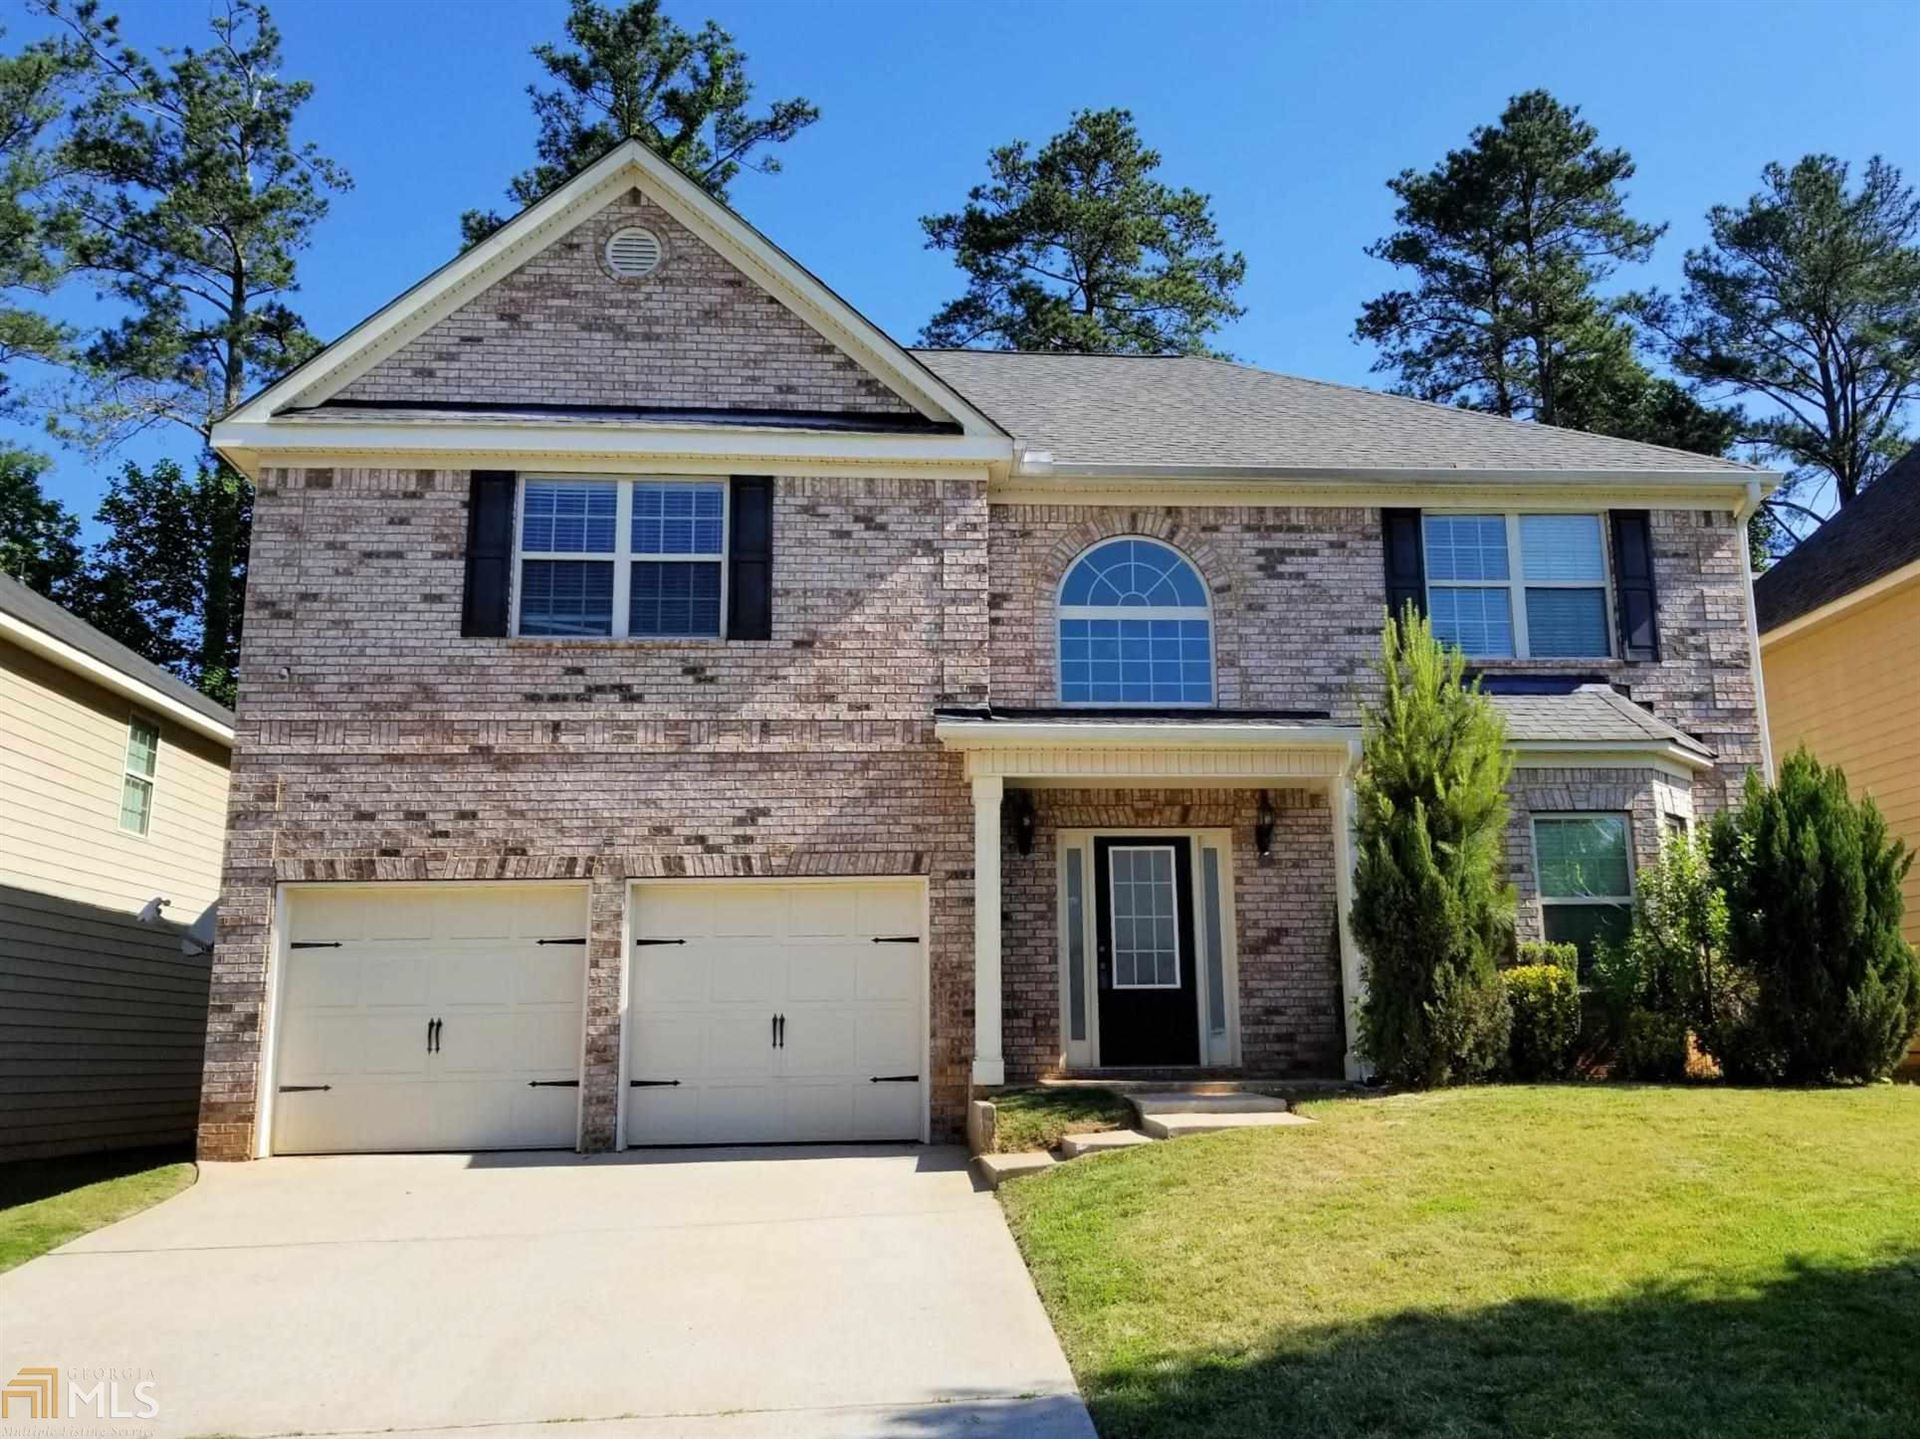 107 Dustin Dr, Stockbridge, GA 30281 - #: 8979040